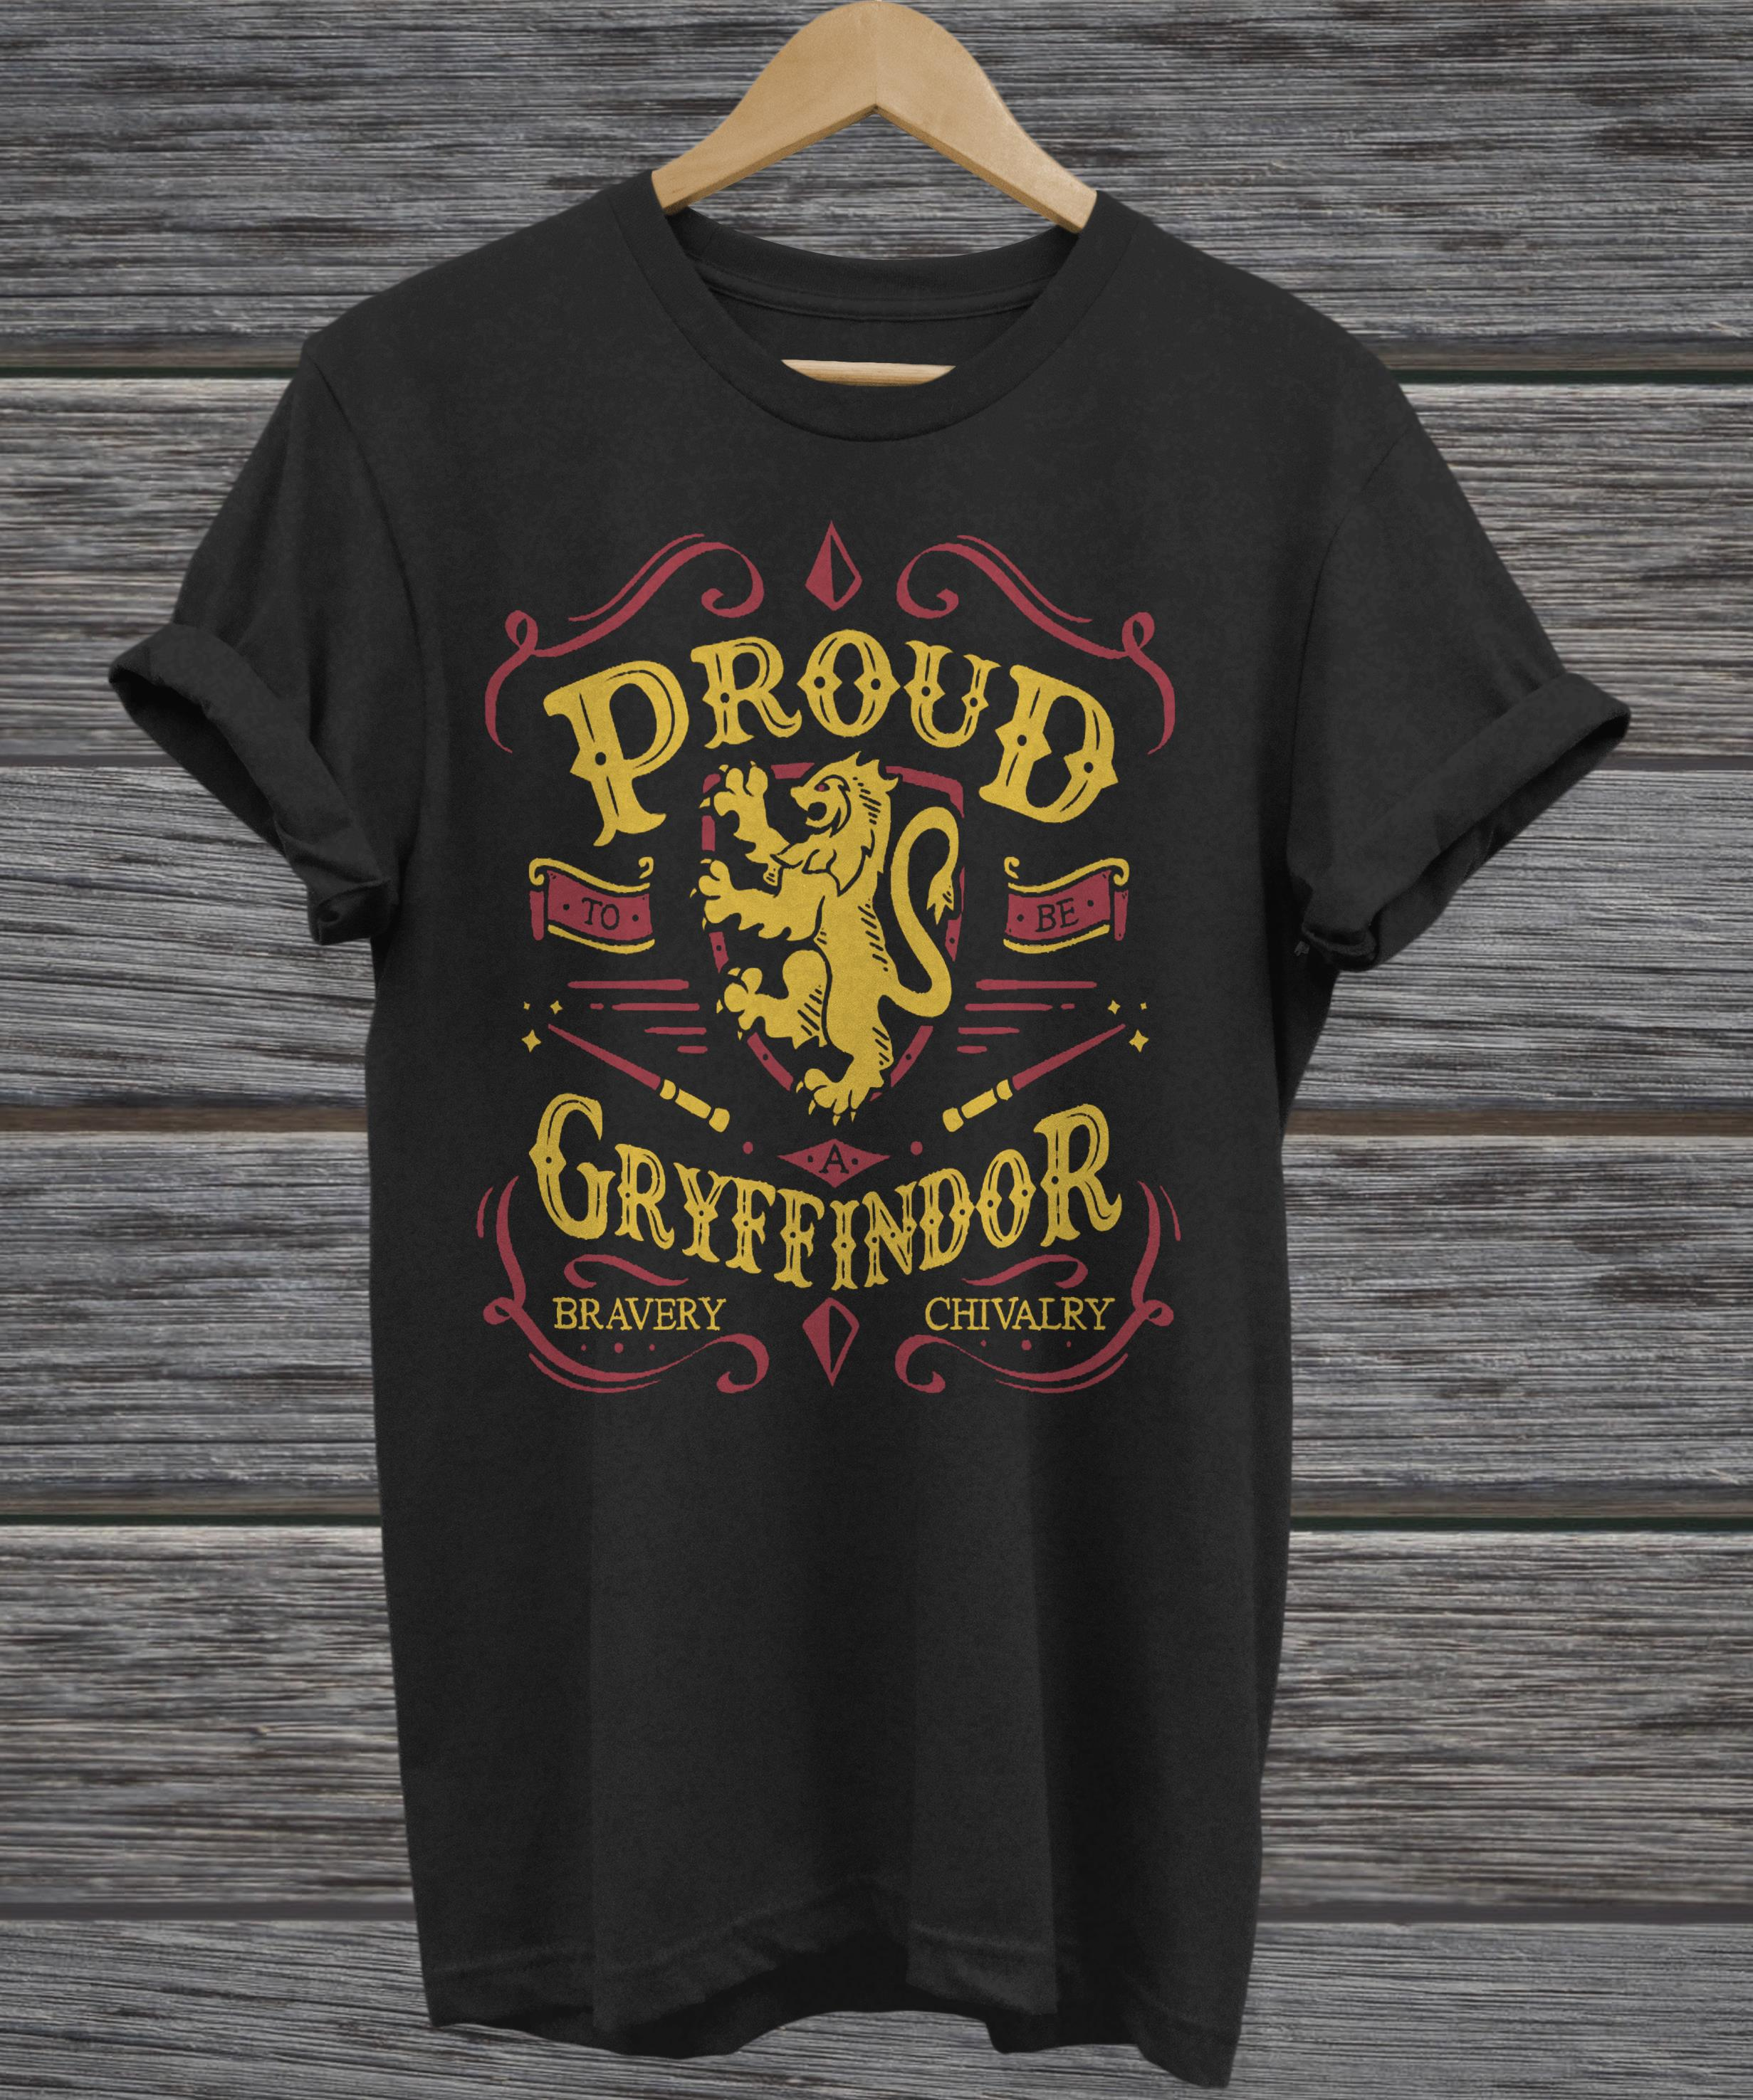 Proud to be a Gryffindor funny tank top